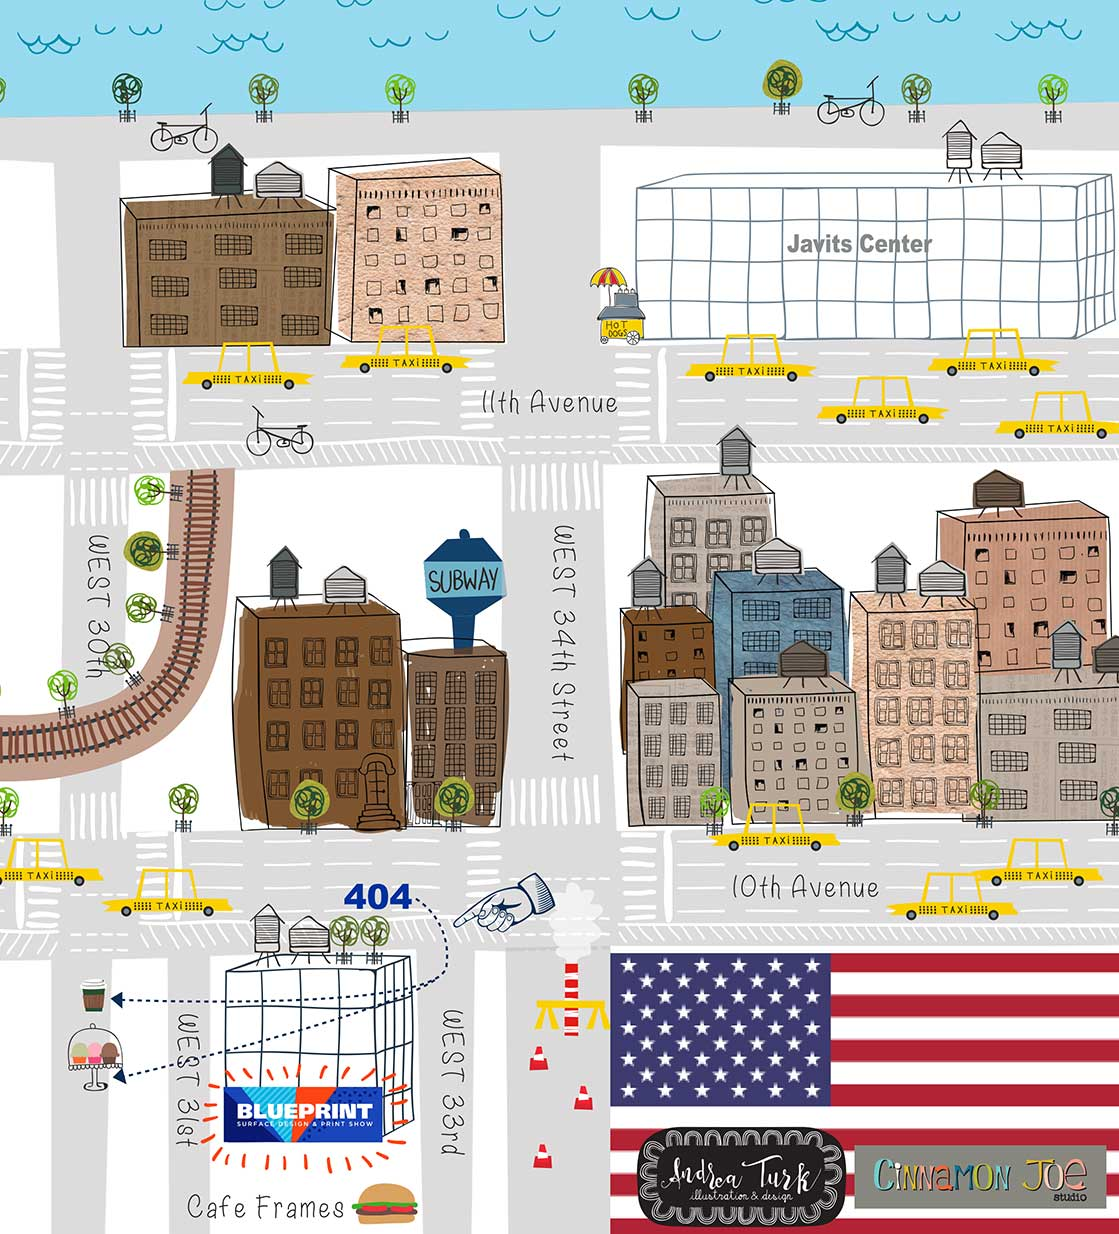 Blueprint show blue print map for new york hipsters blue print map for new york hipsters malvernweather Gallery